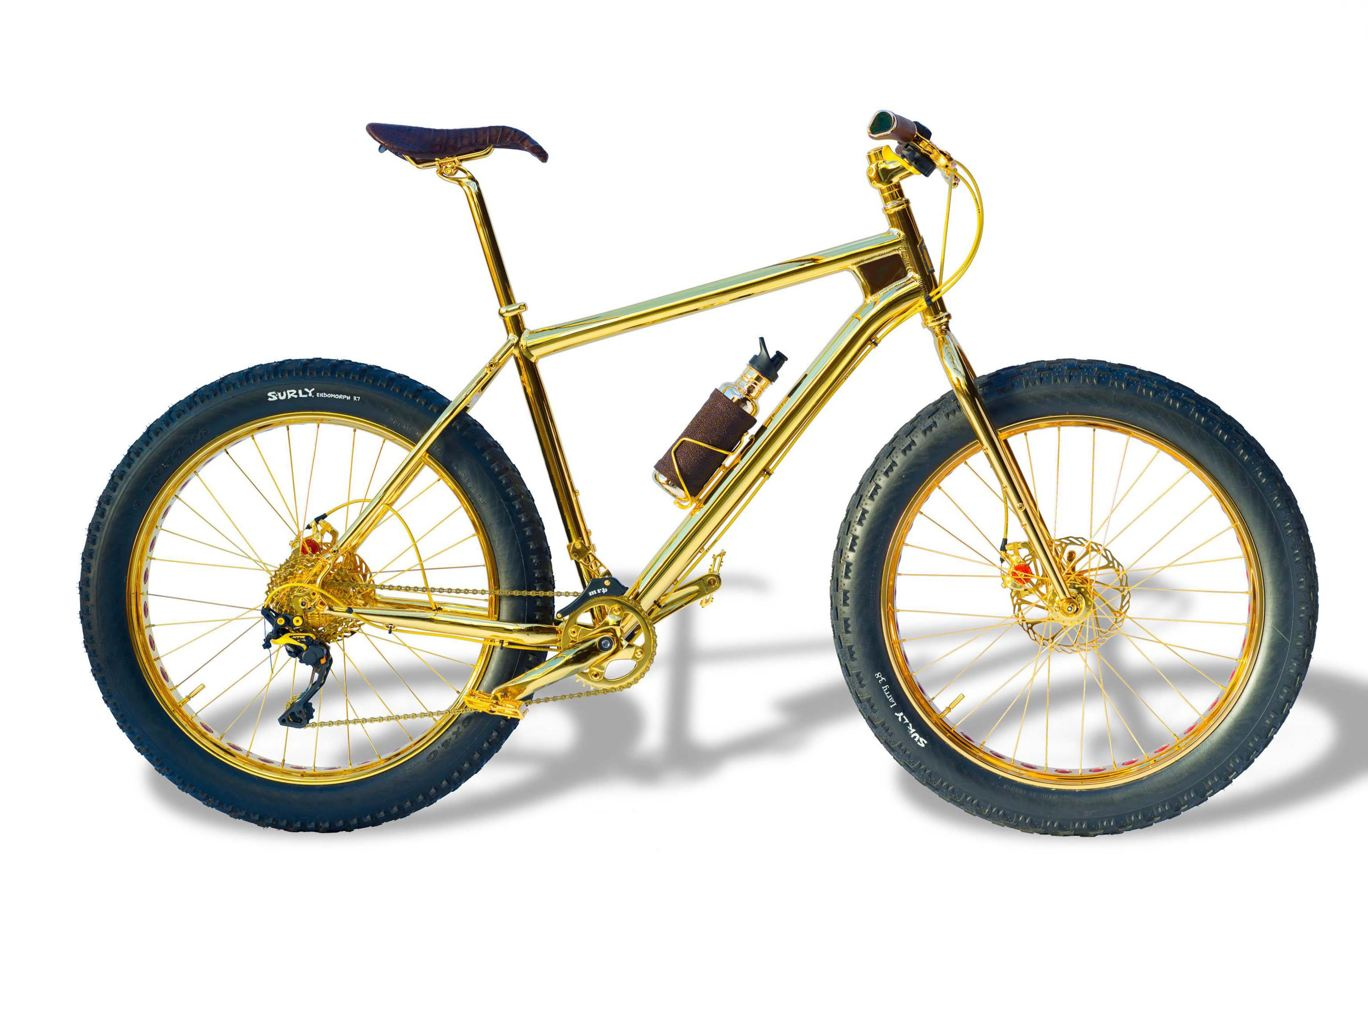 3ef25620-cb9d-11e3-8c33-07445b2e2595_solid_gold_bike_01.jpg